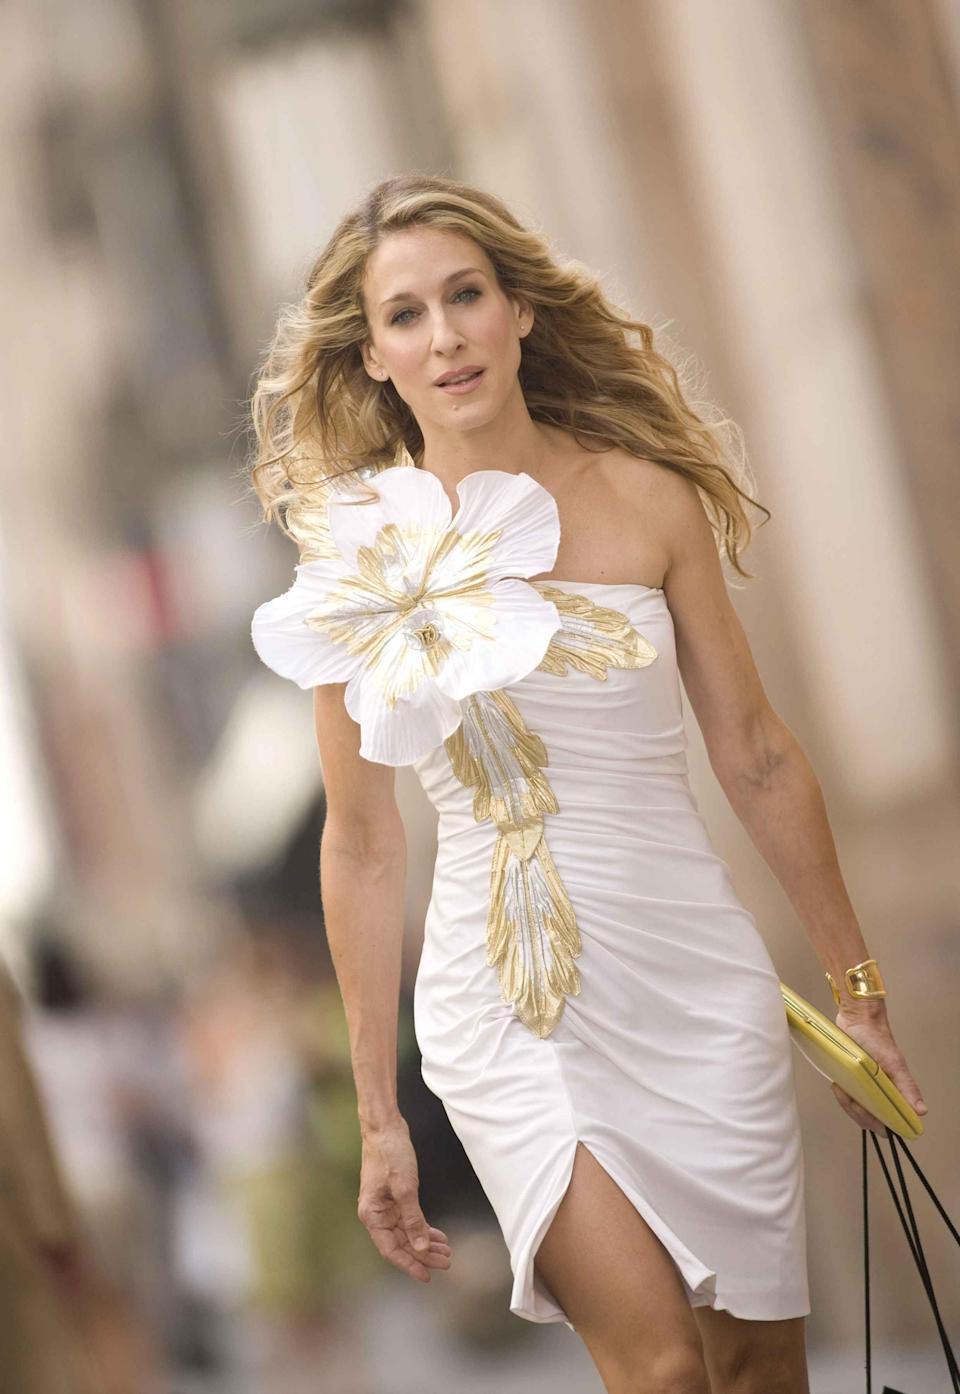 <p>Like it or not, Carrie's unique style helped define <em>Sex and the City</em>. And that's just…you know. </p>